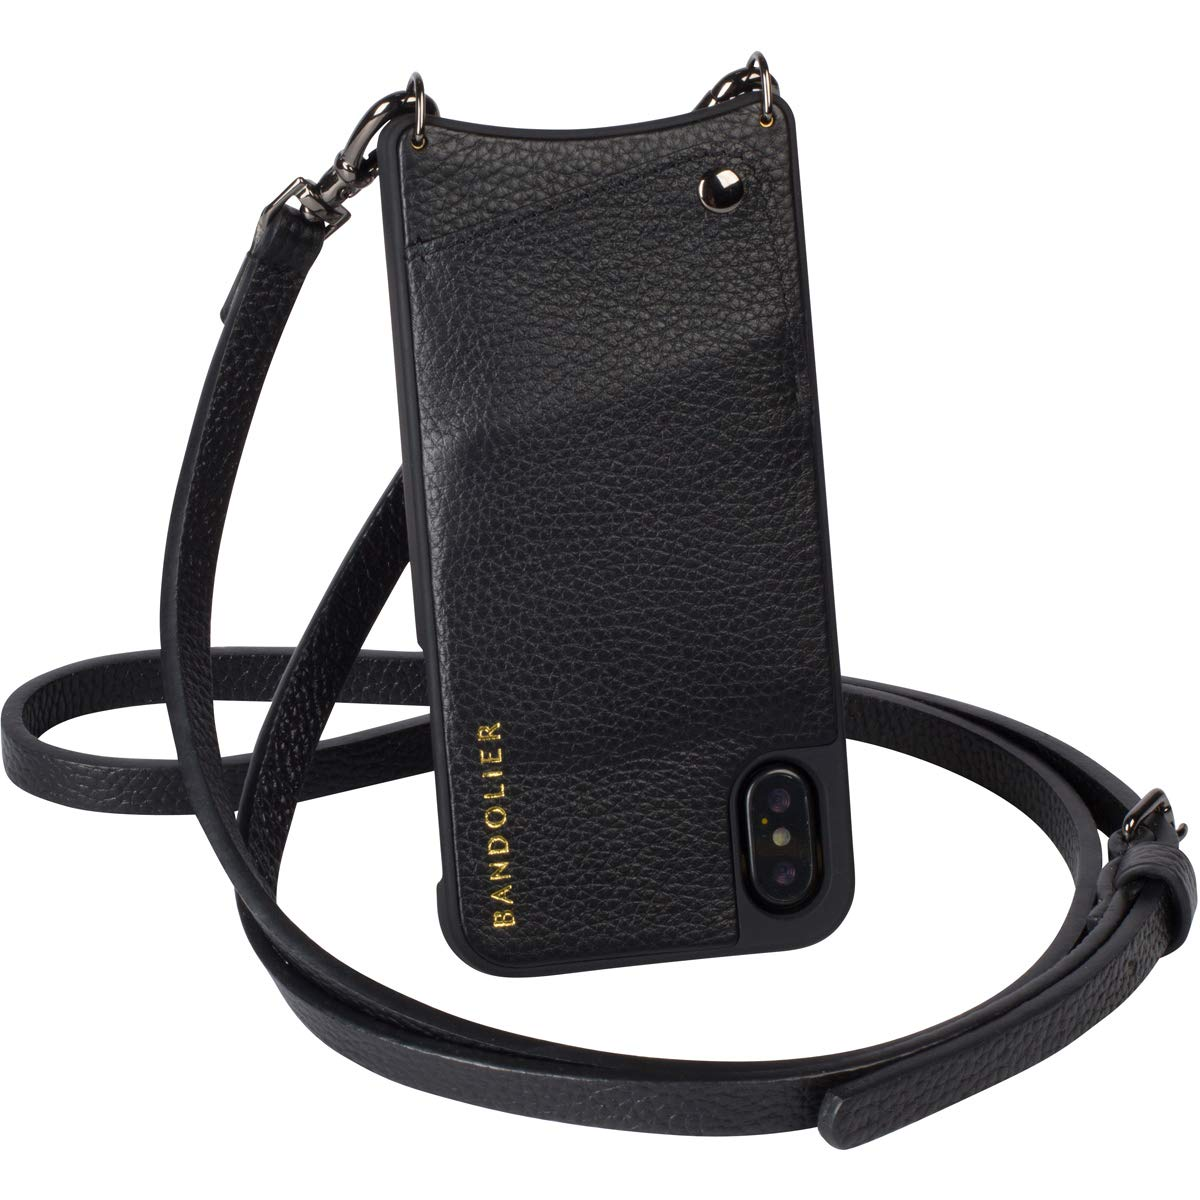 Bandolier [Emma] Crossbody Phone Case and Wallet - Compatible with iPhone XR - Black Leather with Pewter Accent